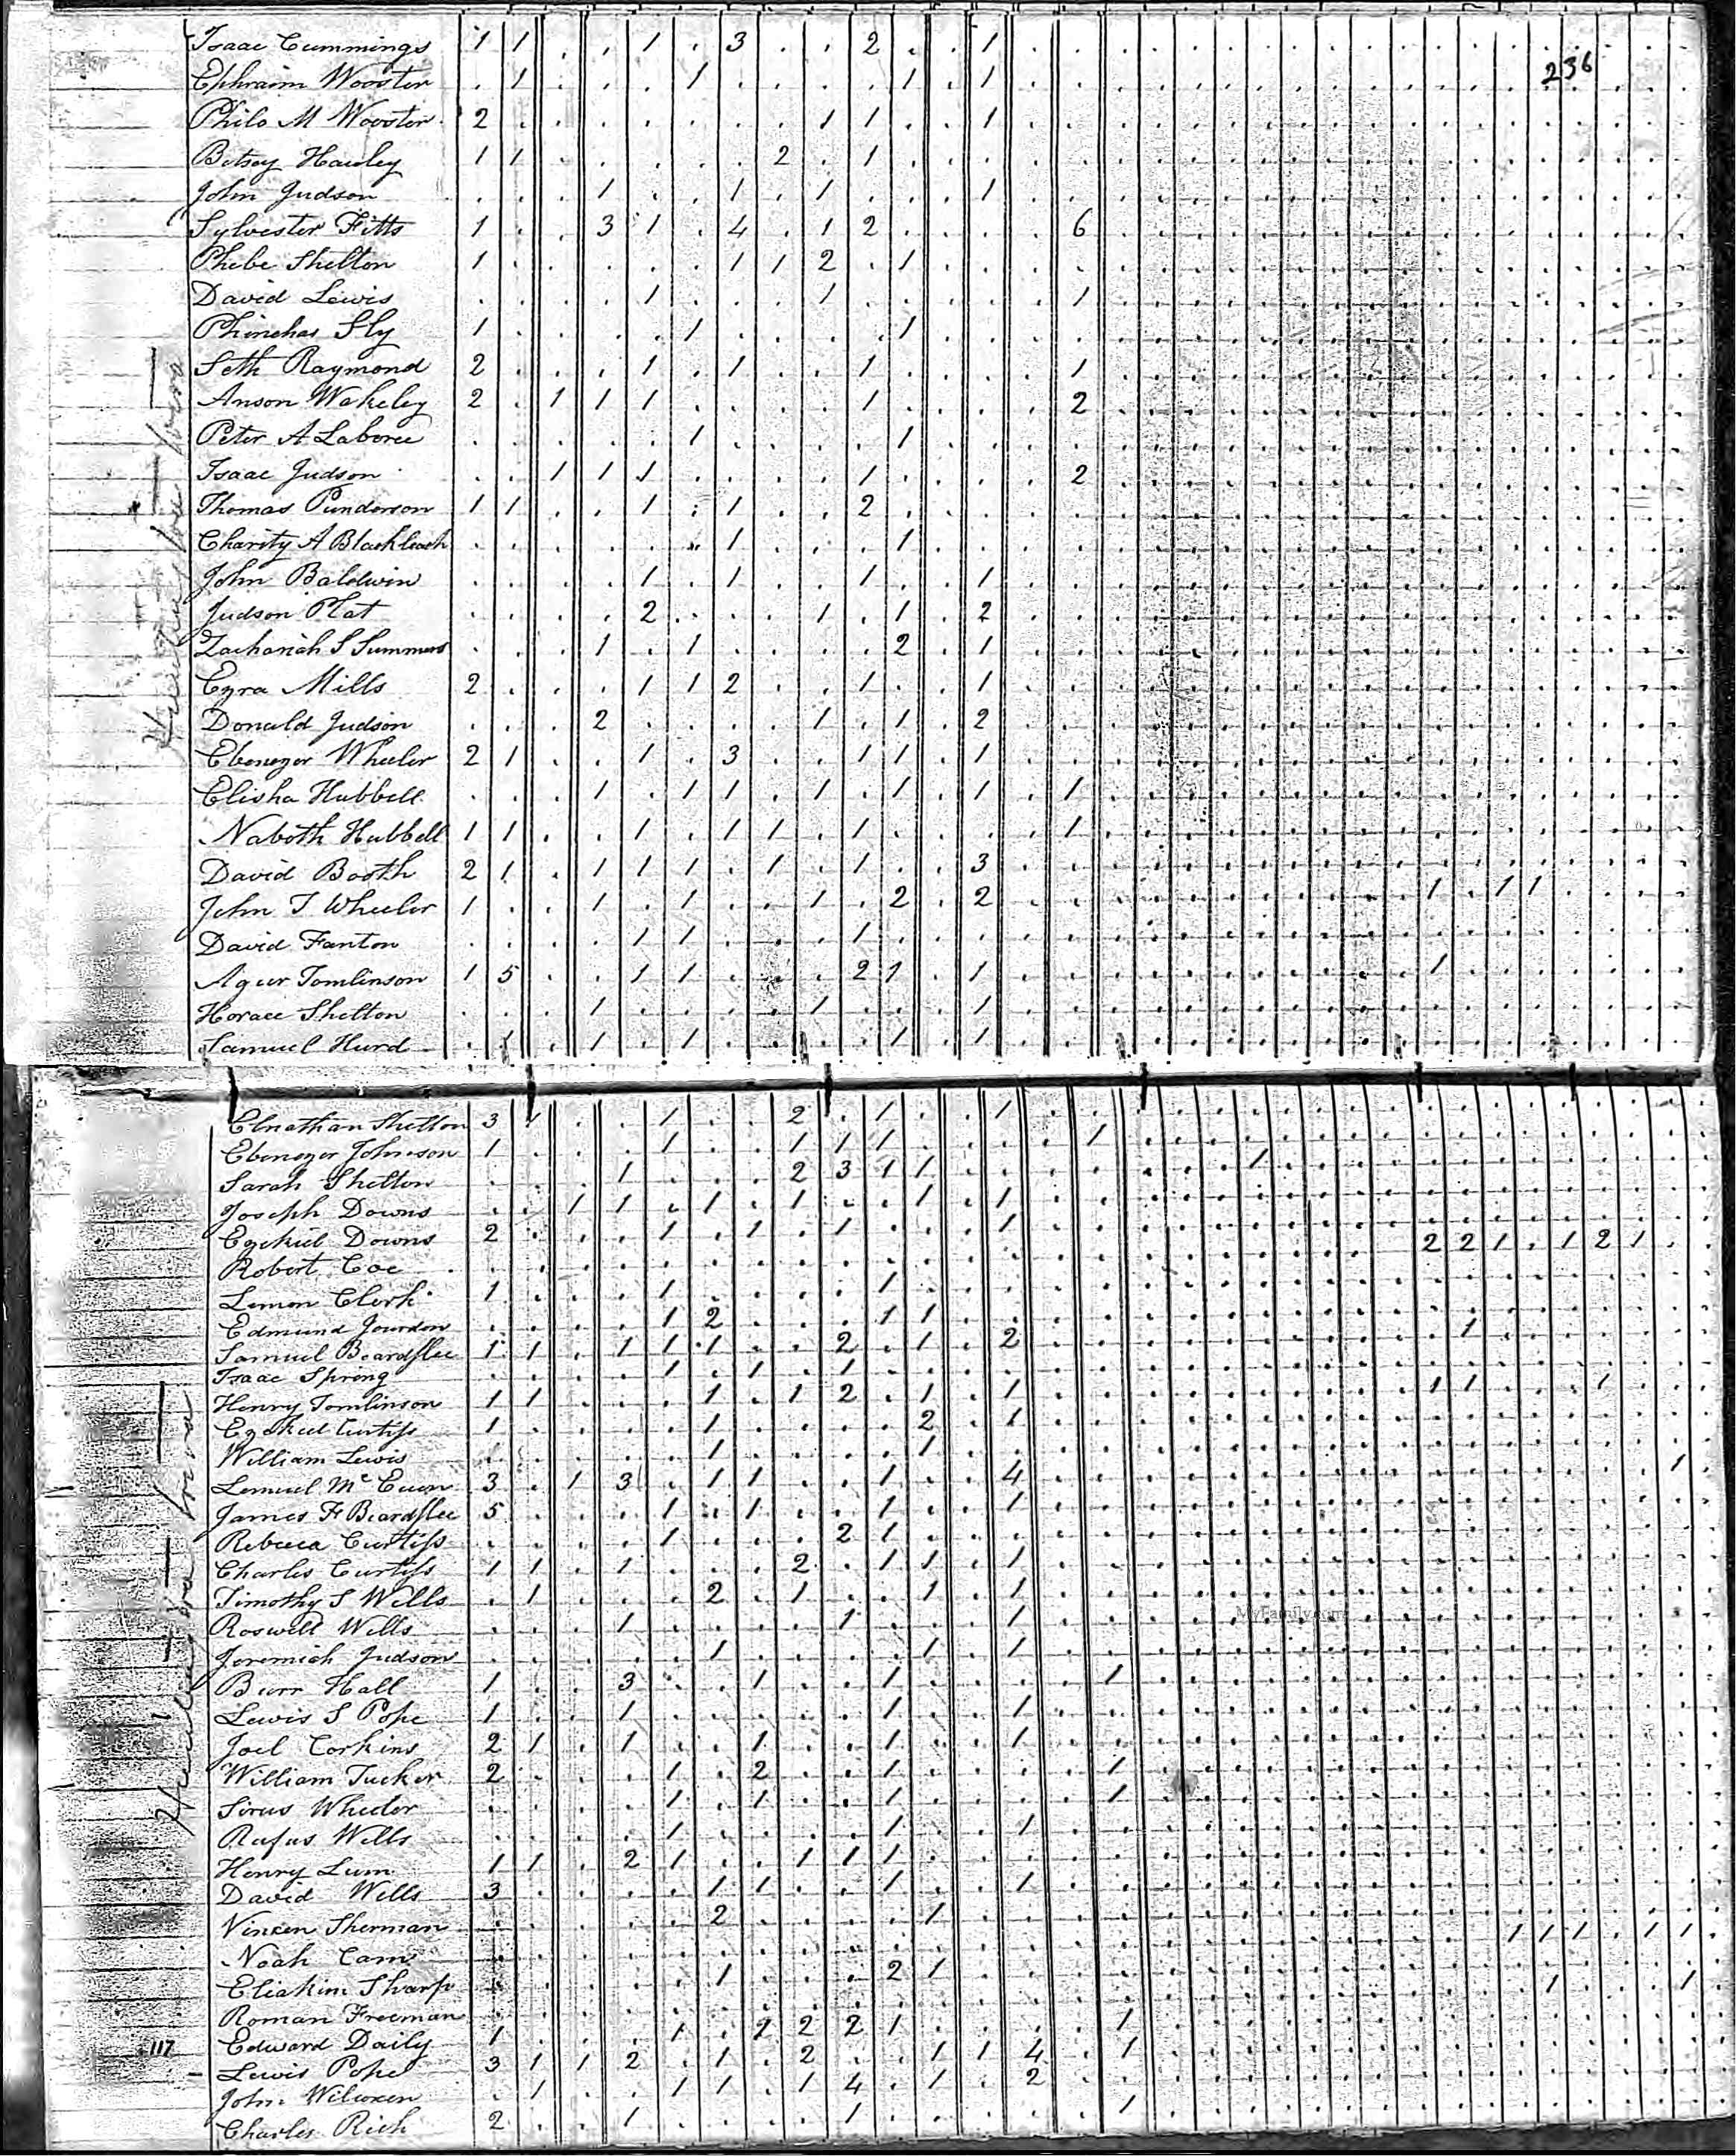 1820census-ct-fairfield-huntington